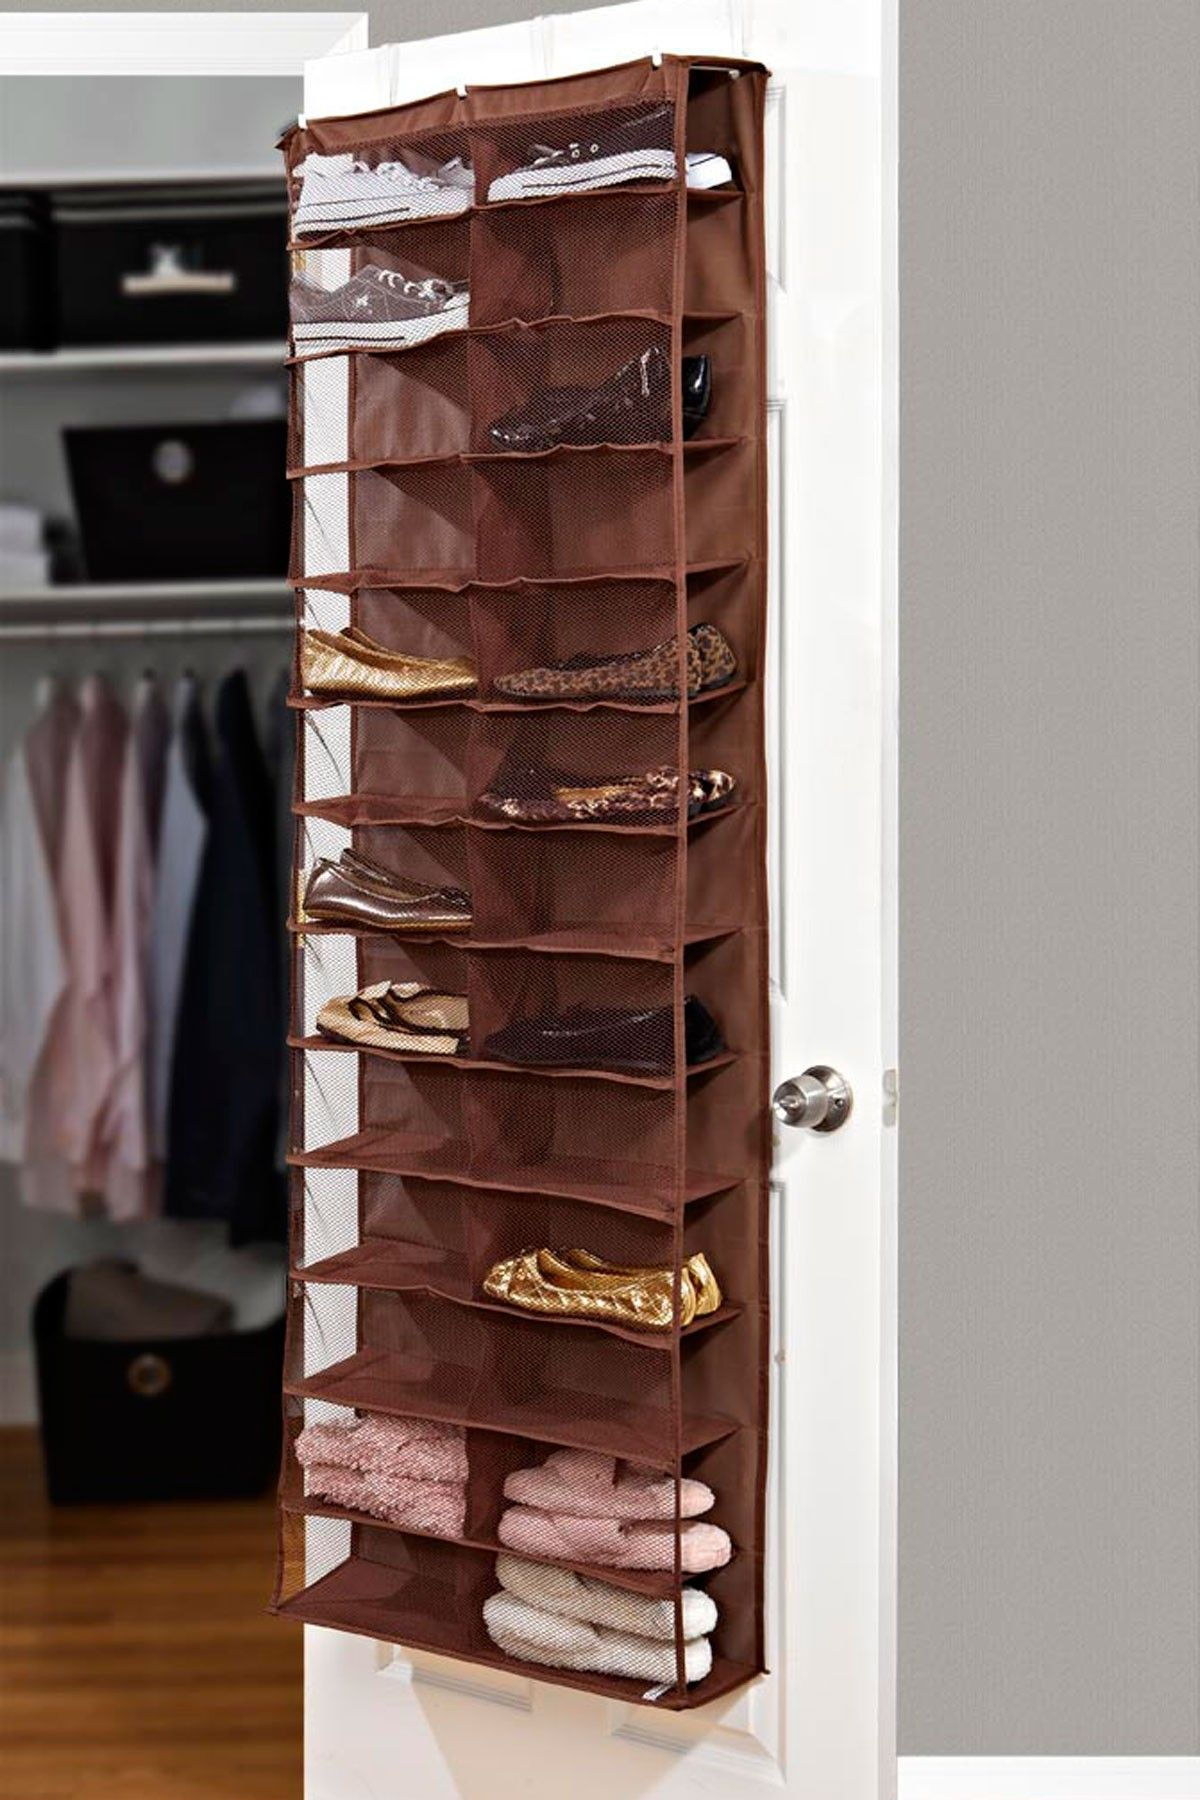 26 Pocket Over the Door Shoe Organizer Chocolate